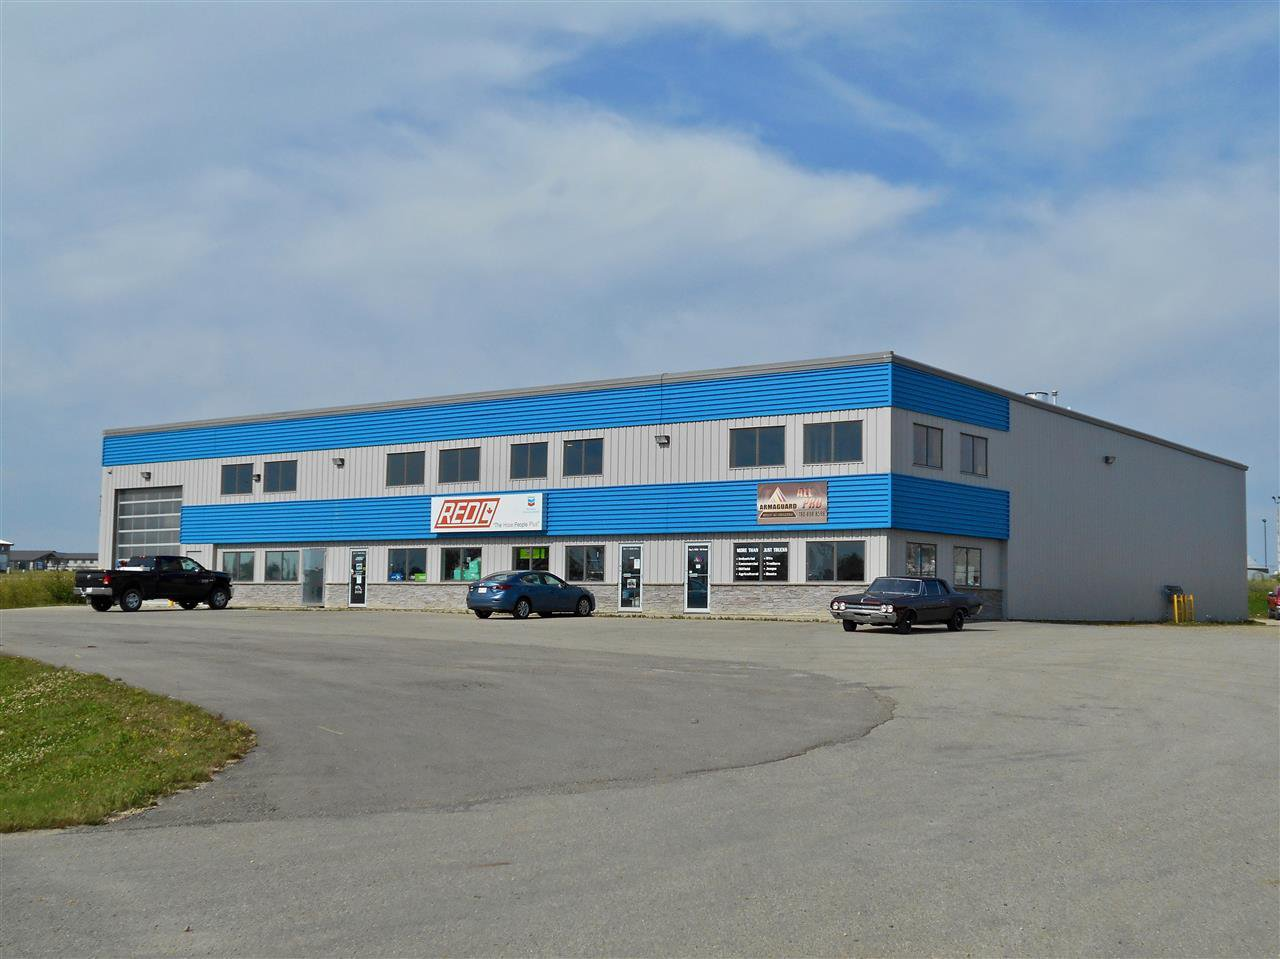 Main Photo: 5638 56 Street: Drayton Valley Industrial for lease : MLS®# E4209737